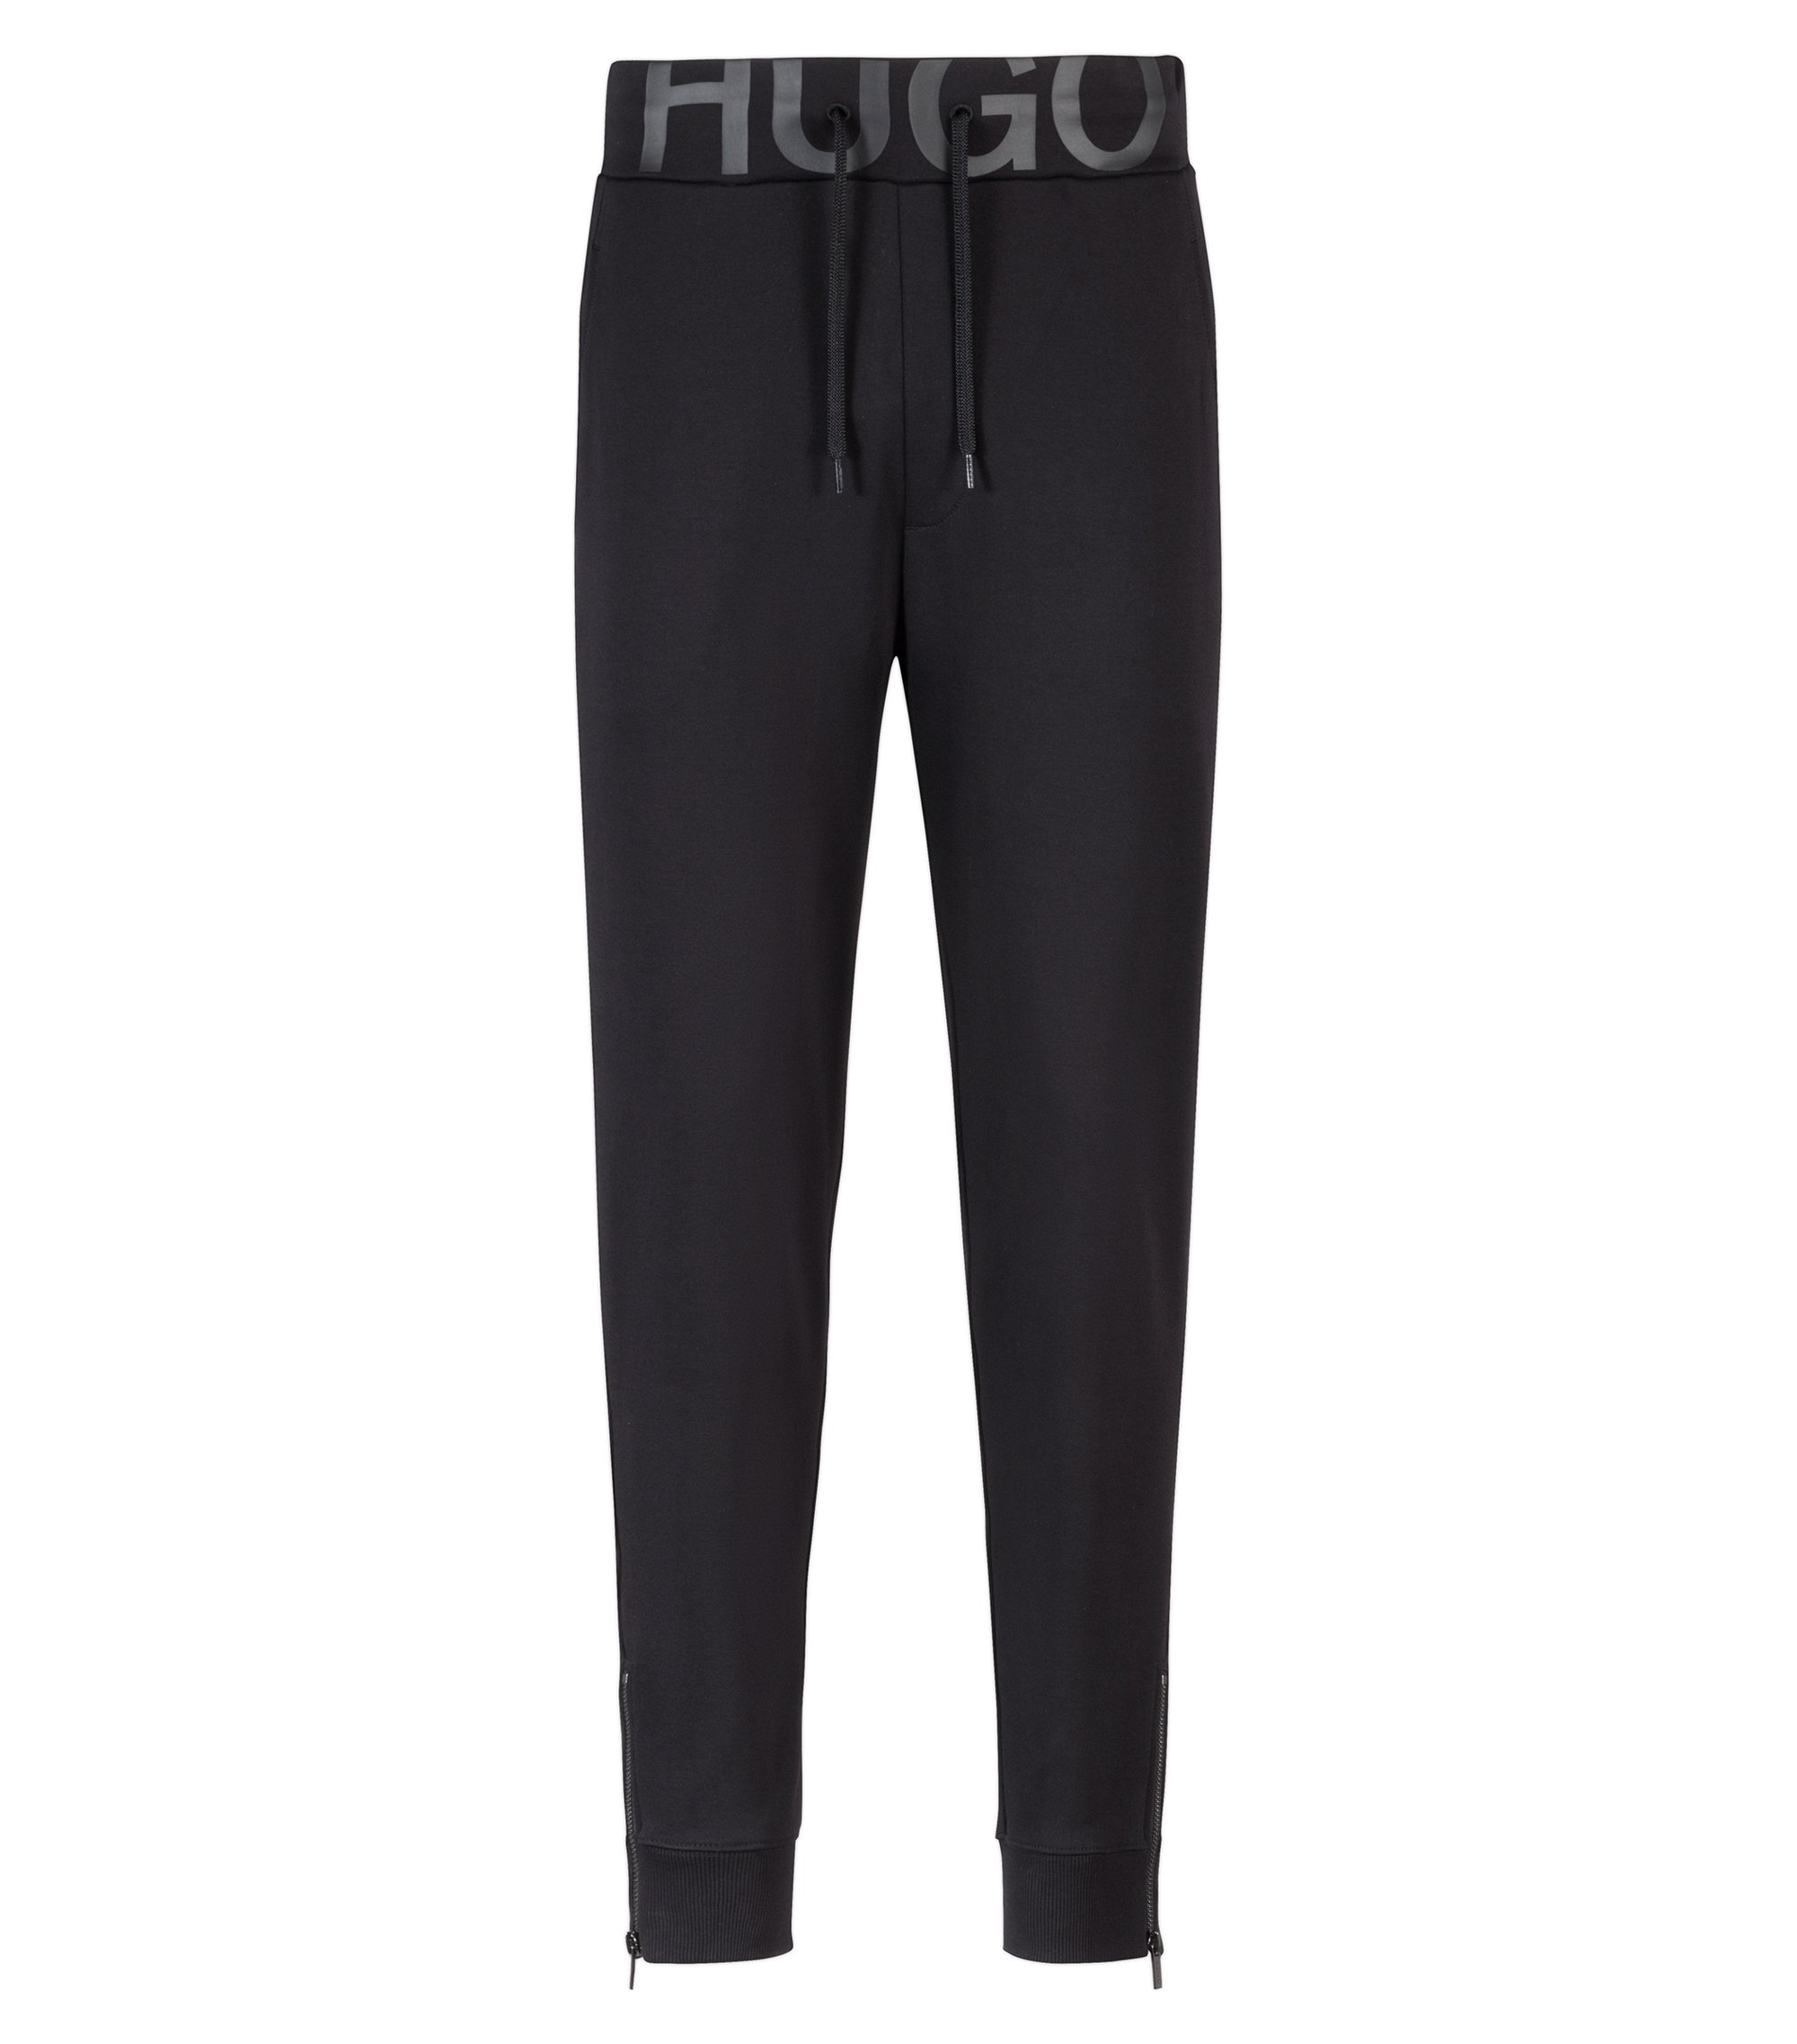 Zip-cuff trousers in cotton jersey with logo waistband, Black